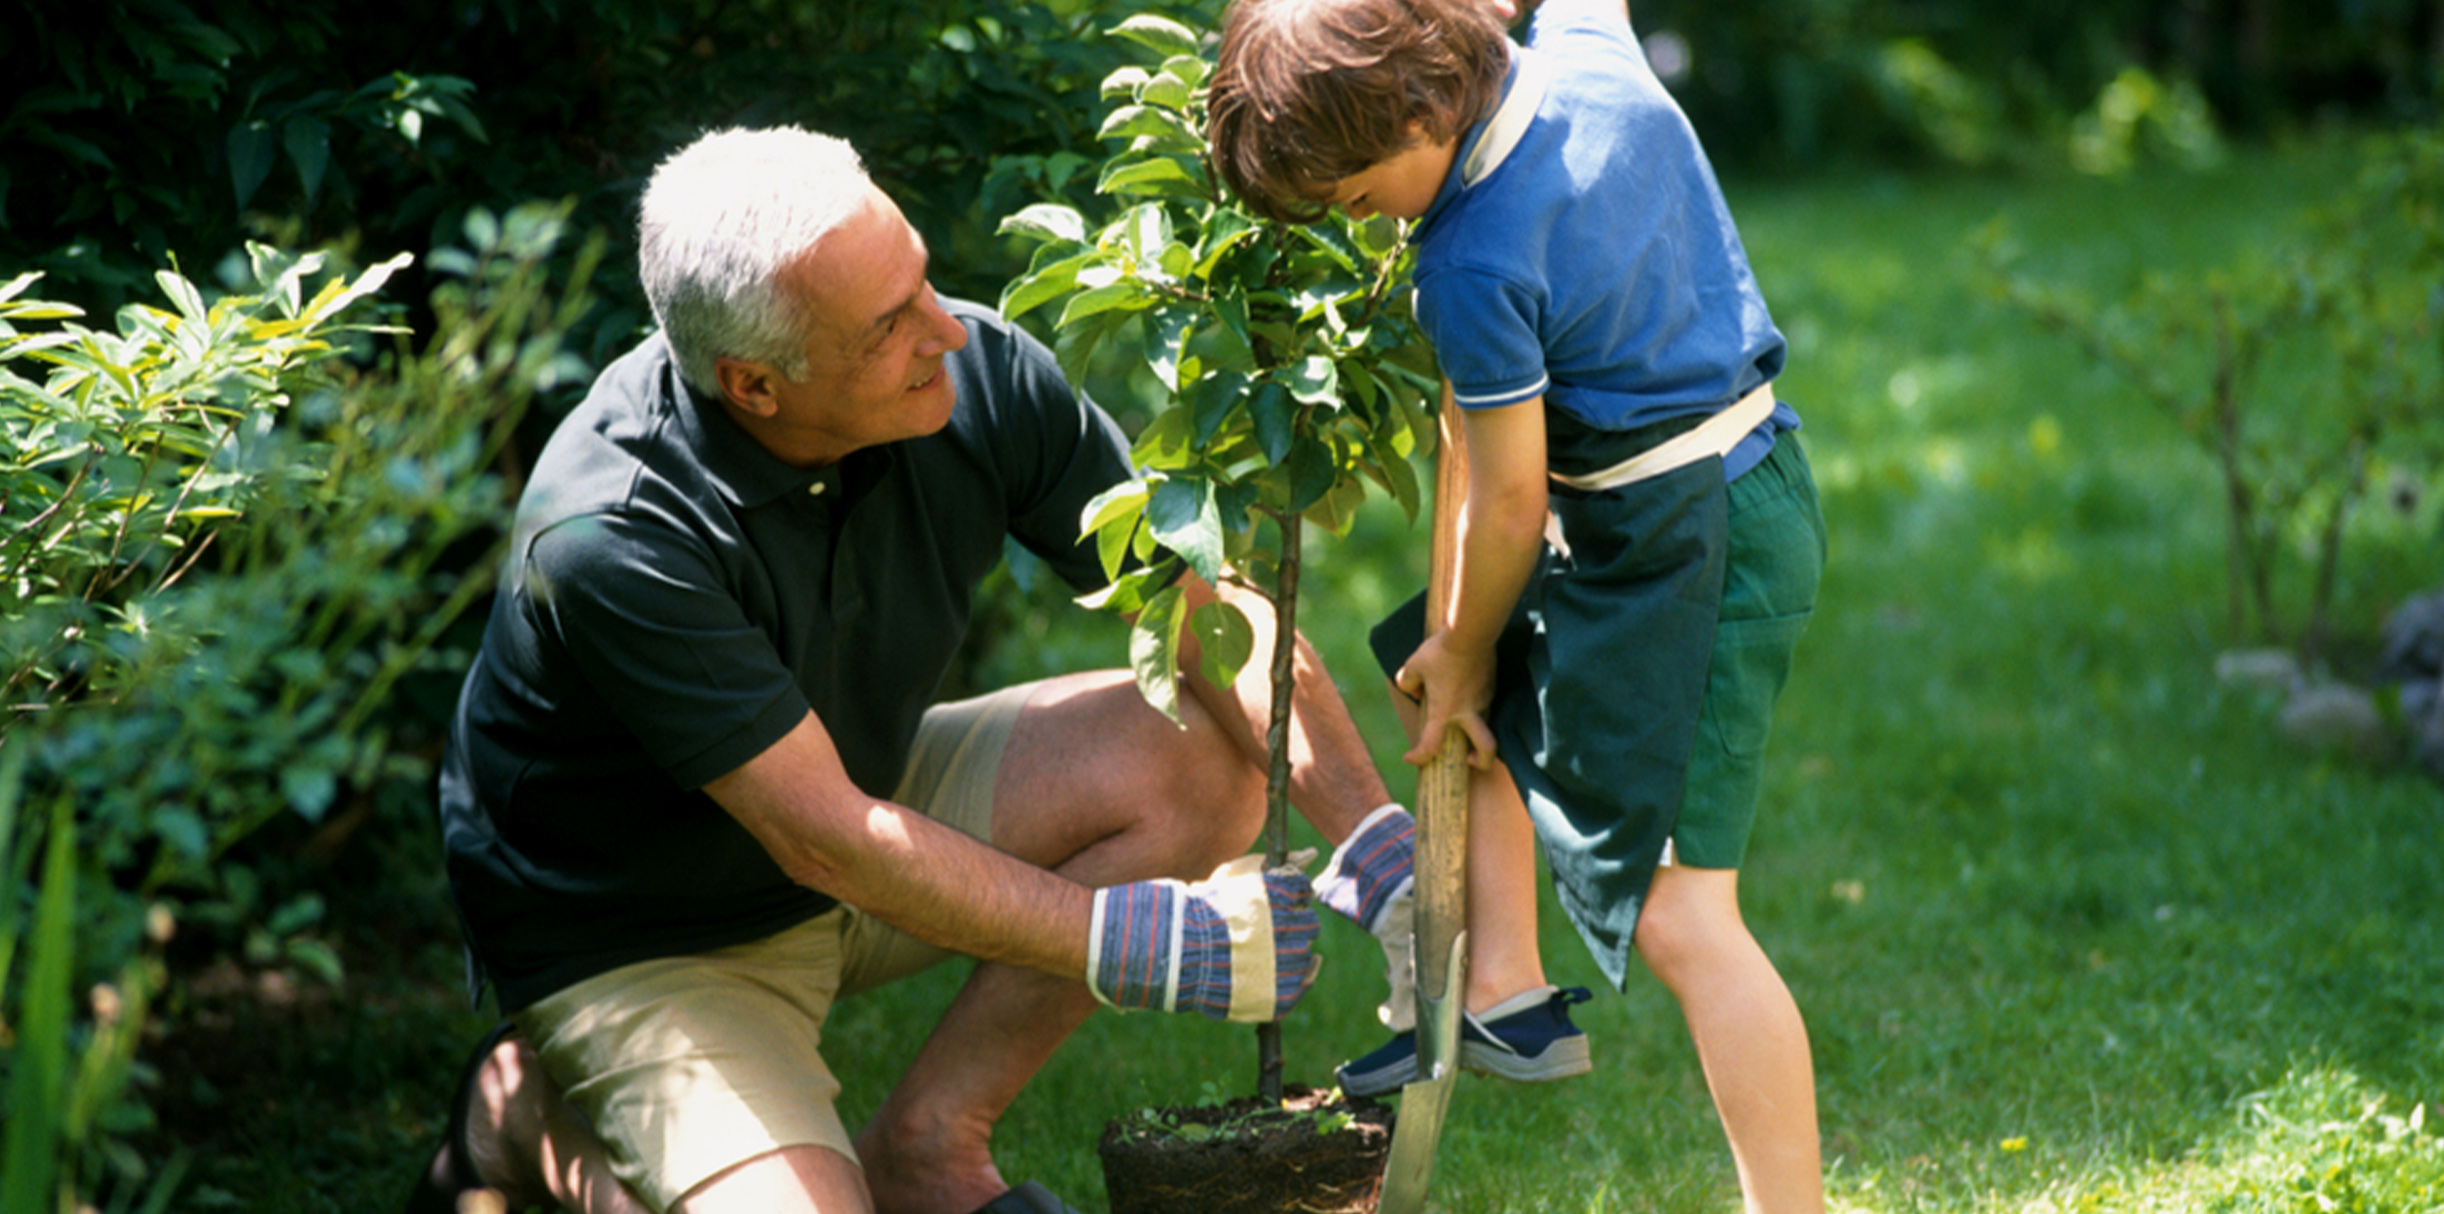 A father and son planting a tree.